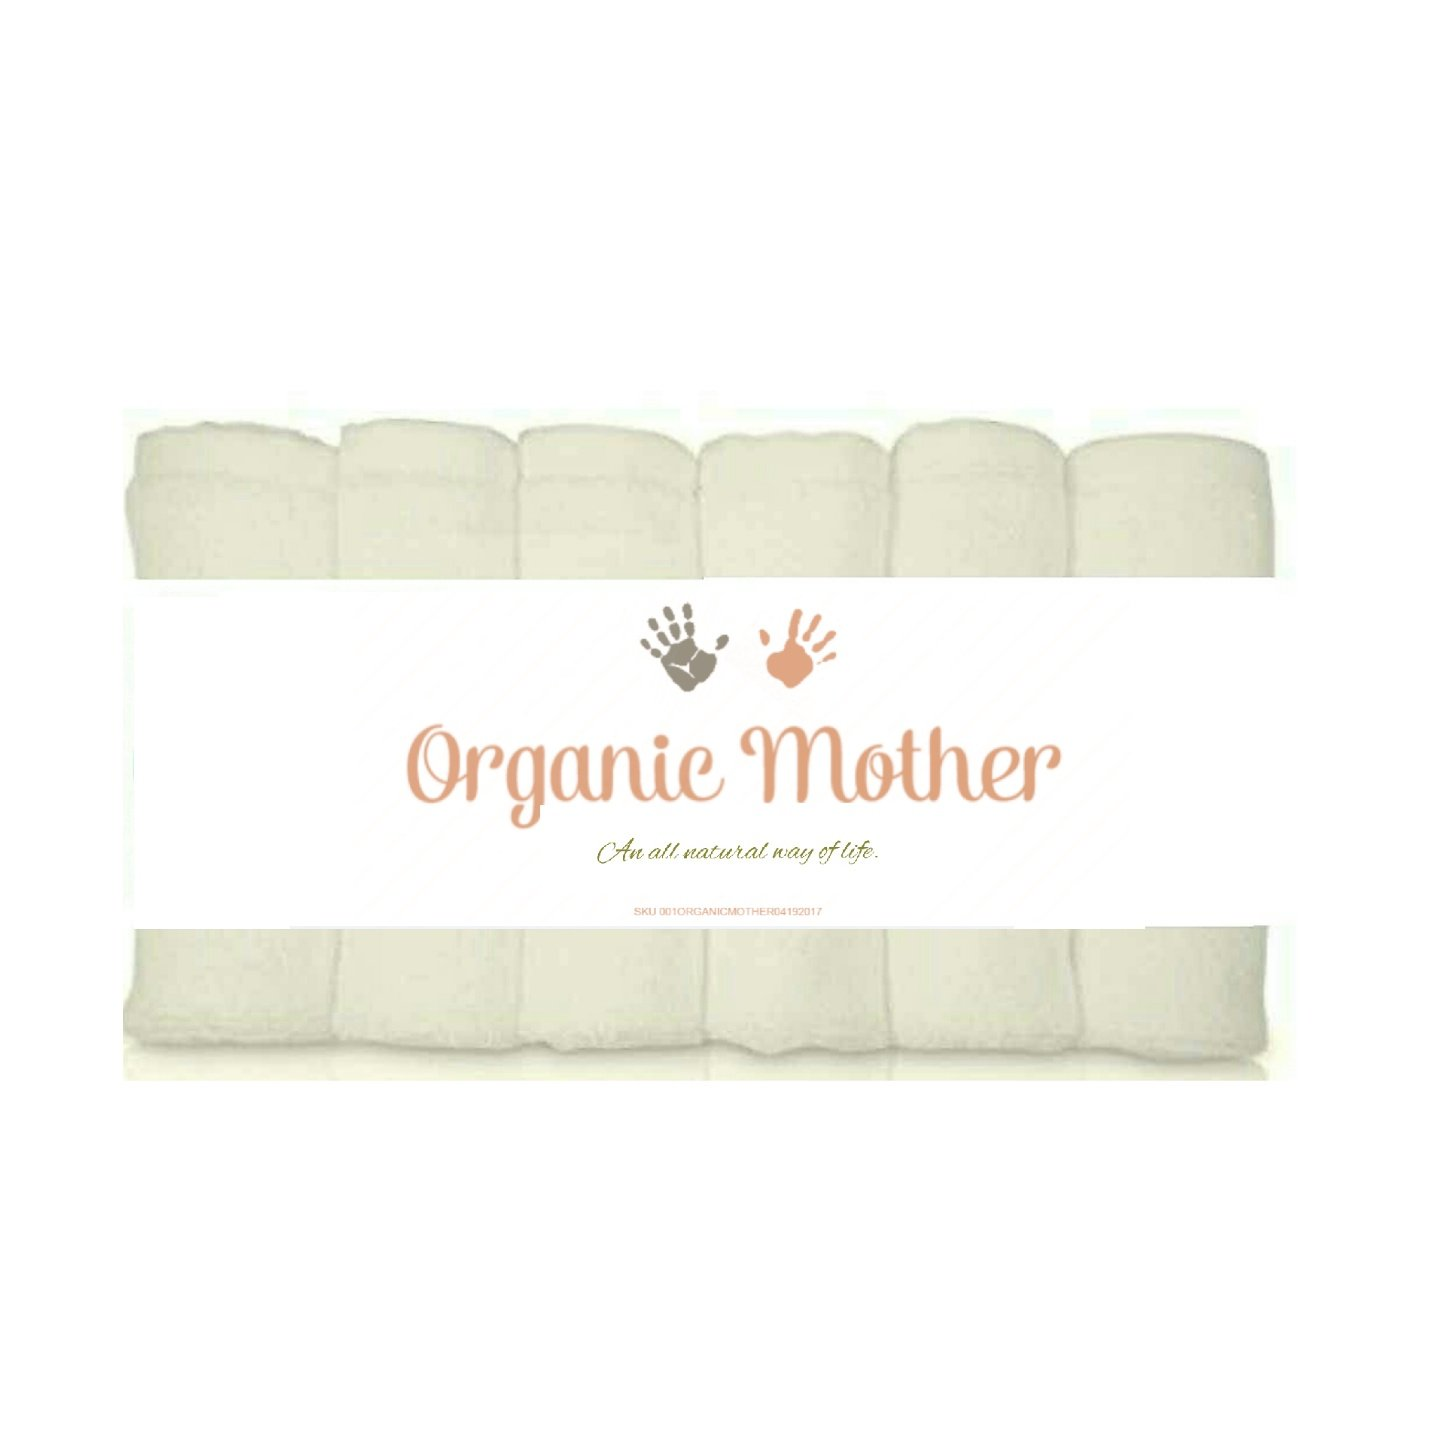 ORGANIC MOTHER 6 EXTRA SOFT Baby Bath Washcloths, 100% Natural Bamboo Towels, Dye Free, Perfect for Sensitive Baby Skin, 100% Organic, Hypoallergenic, All Natural, Bamboo, Eco Friendly- SIZE 10'' X10'' by ORGANIC MOTHER